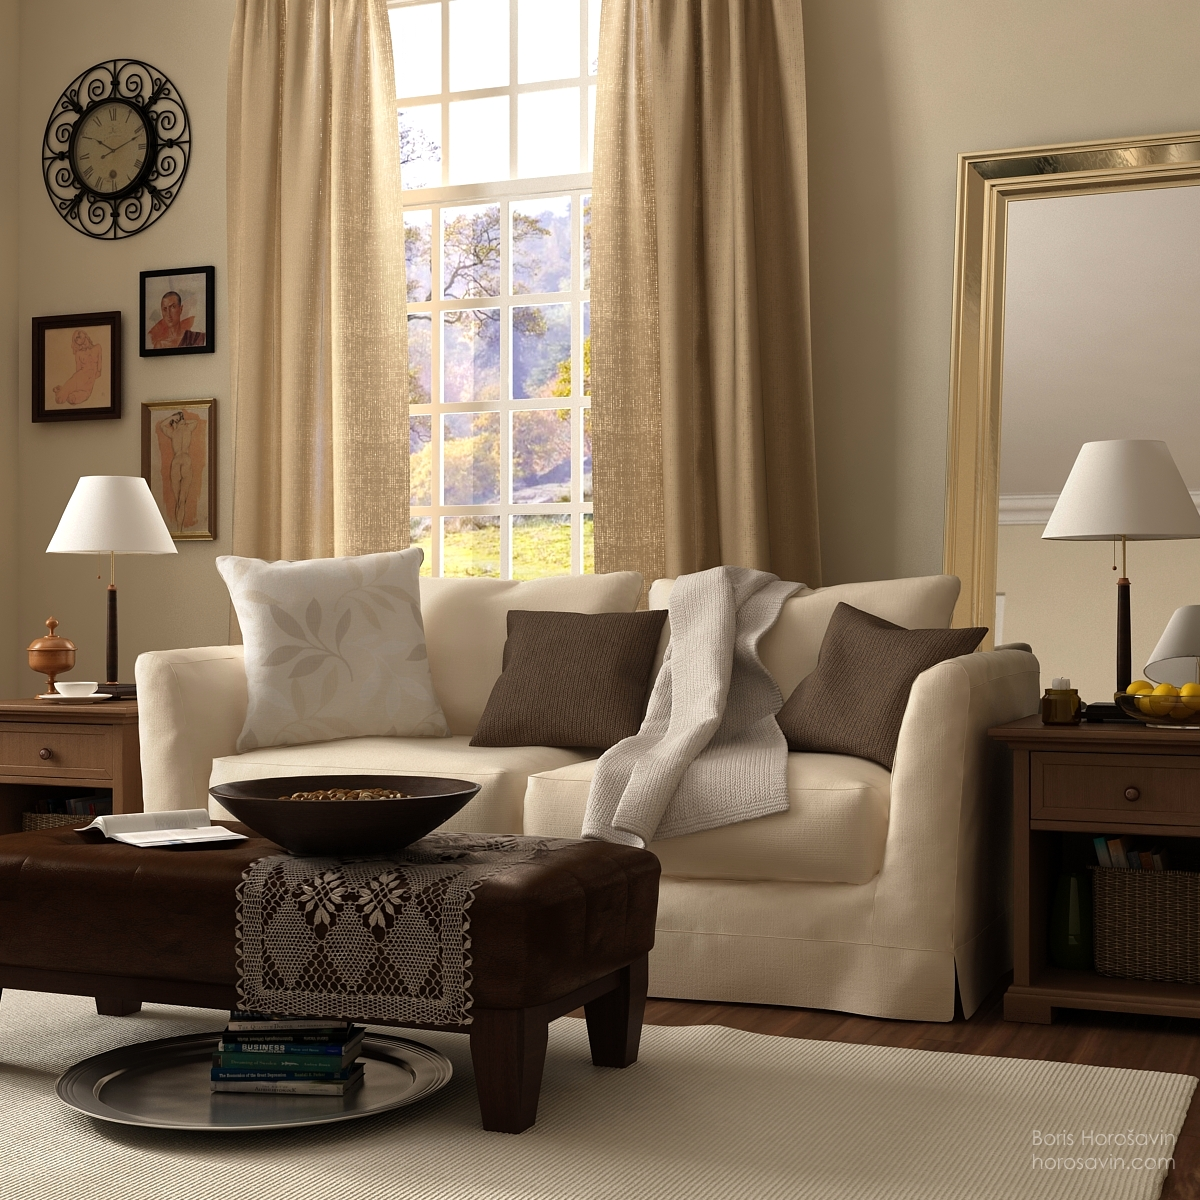 Muebles Dico Beyond White Bliss Of Soft And Elegant Beige Living Rooms